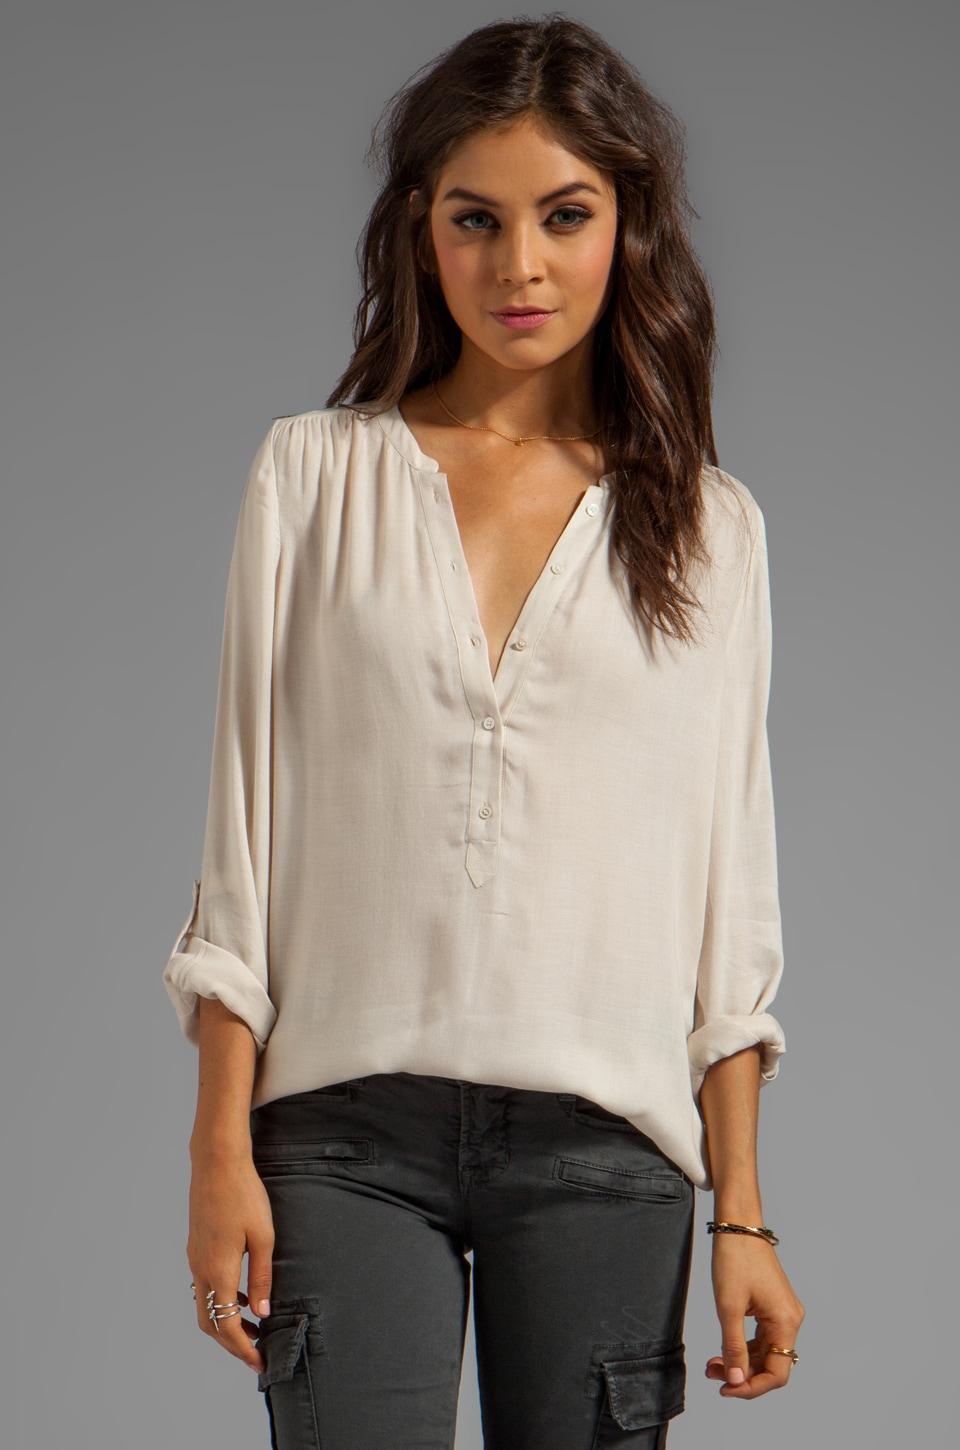 Joie Twill Rayon Tamarine Blouse in New Moon